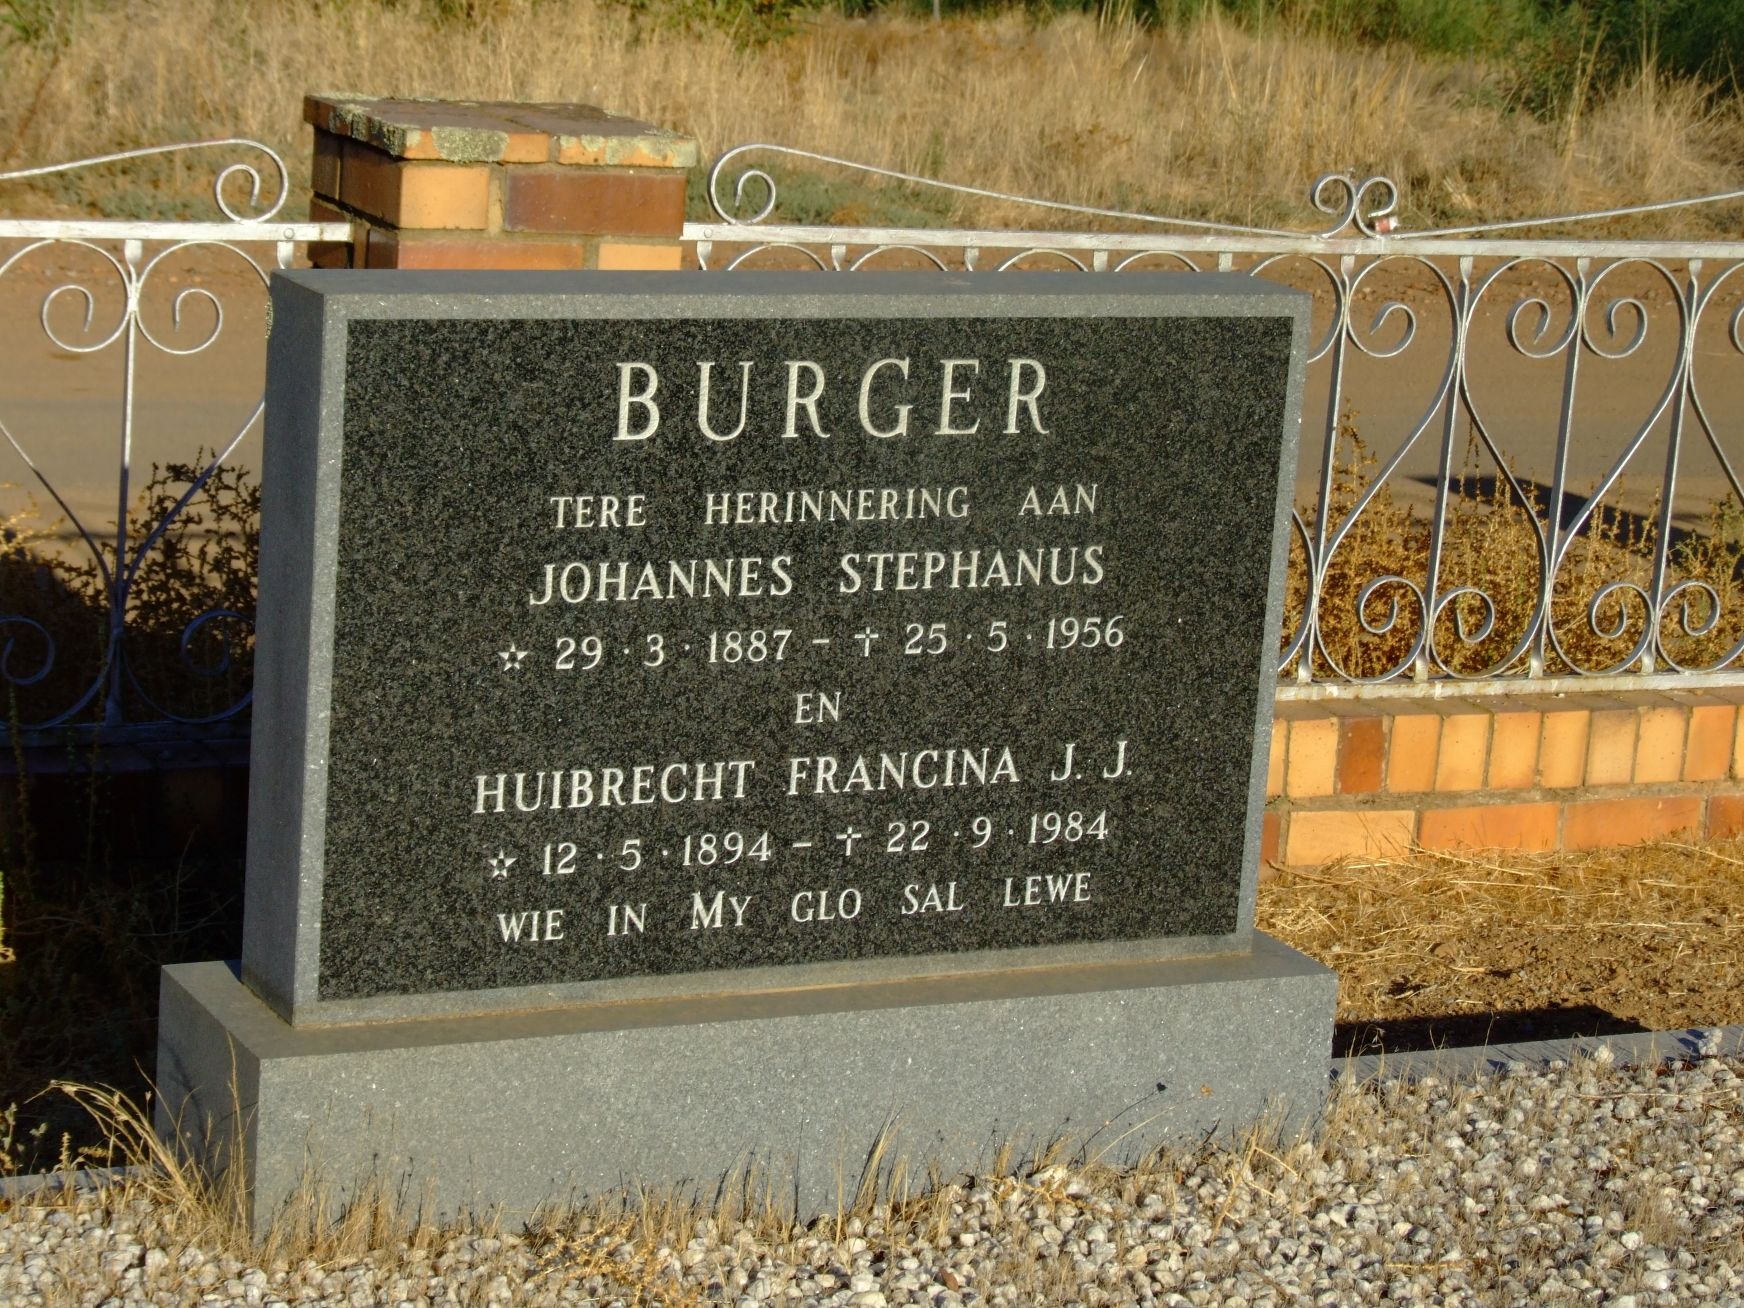 Burger, Johannes Stephanus and Burger, Huibrecht Francina J. J.